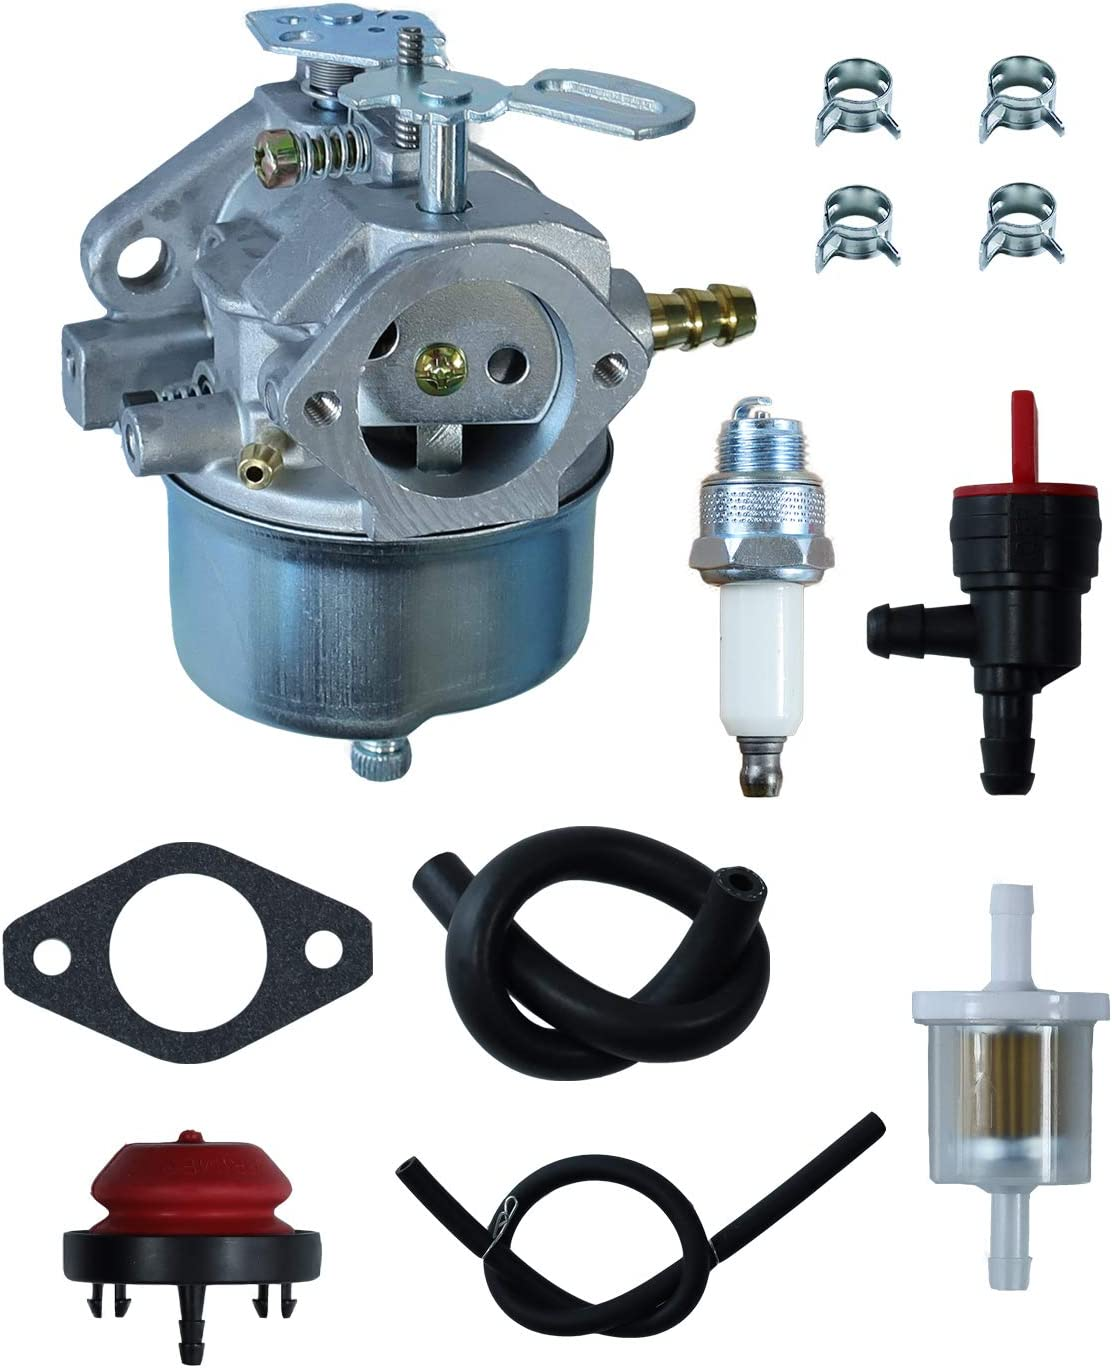 632334 Carburetor Tune-up Kits Replaces # 1099,1432,632334A,640084B,Oregon 50-642 for Tecumseh HM80 HM70 HMSK80 HMSK90 Fits for John Deere AM108405 AM100246 Toro 824 824XL 828 Snow Blower Throwers